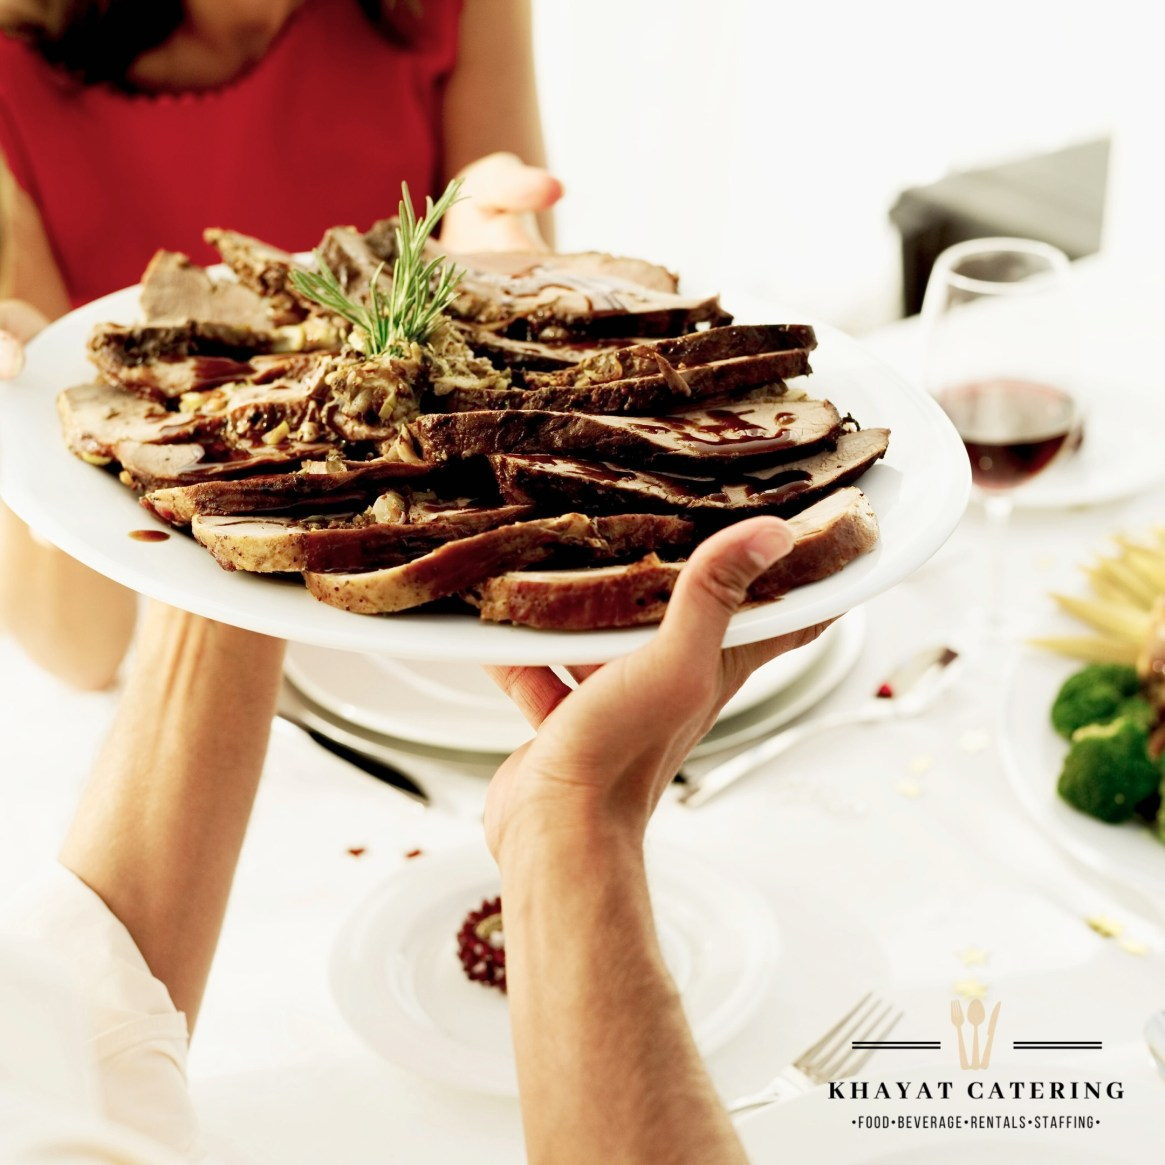 Khayat Catering sliced roast bee